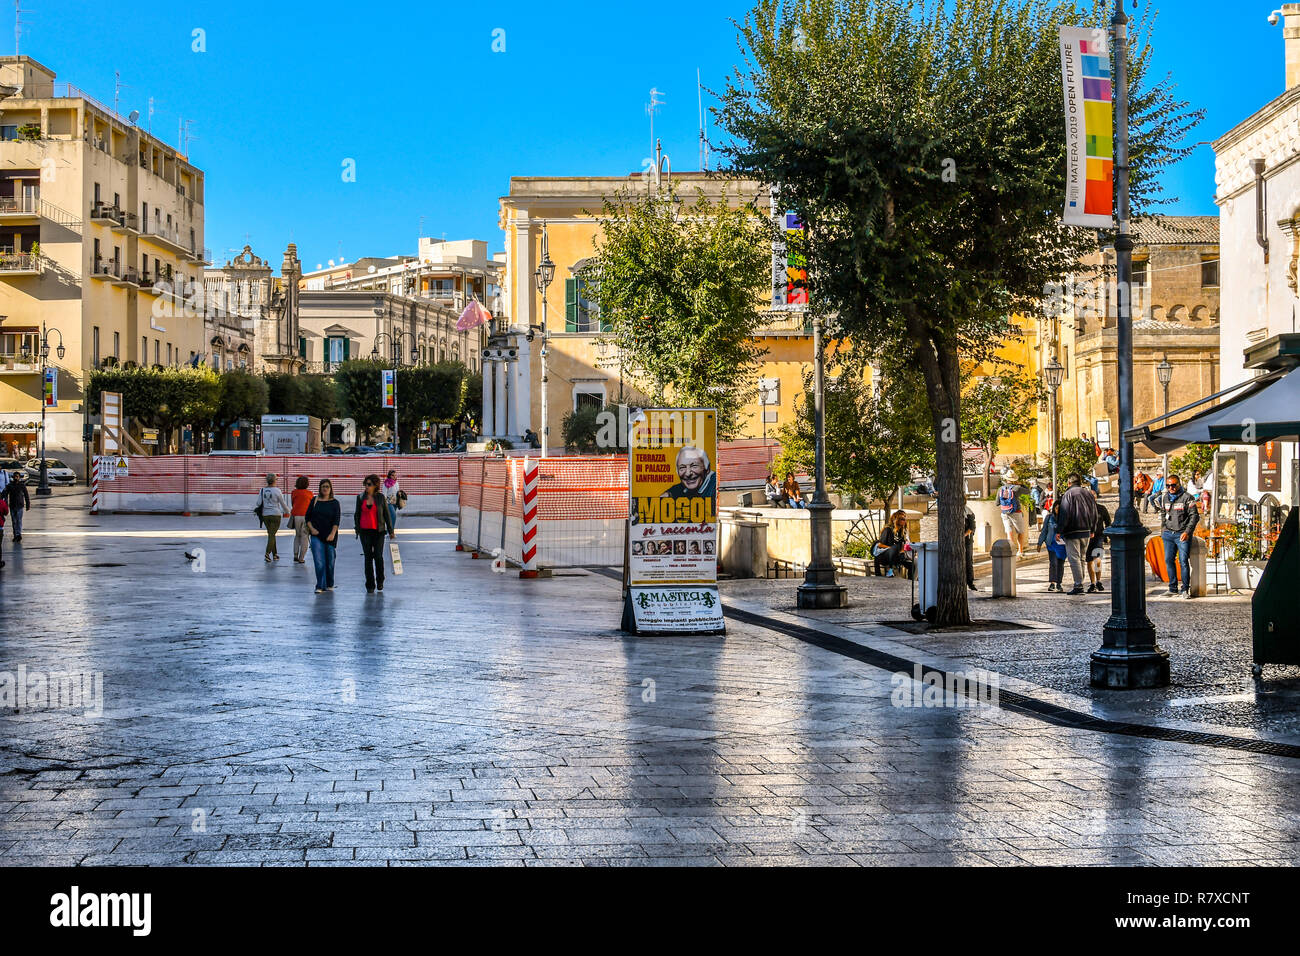 Matera, Italy - September 24 2018: Local Italians enjoy a sunny day in early autumn in the Matera Town Square, Piazza Vittorio Veneto. Stock Photo